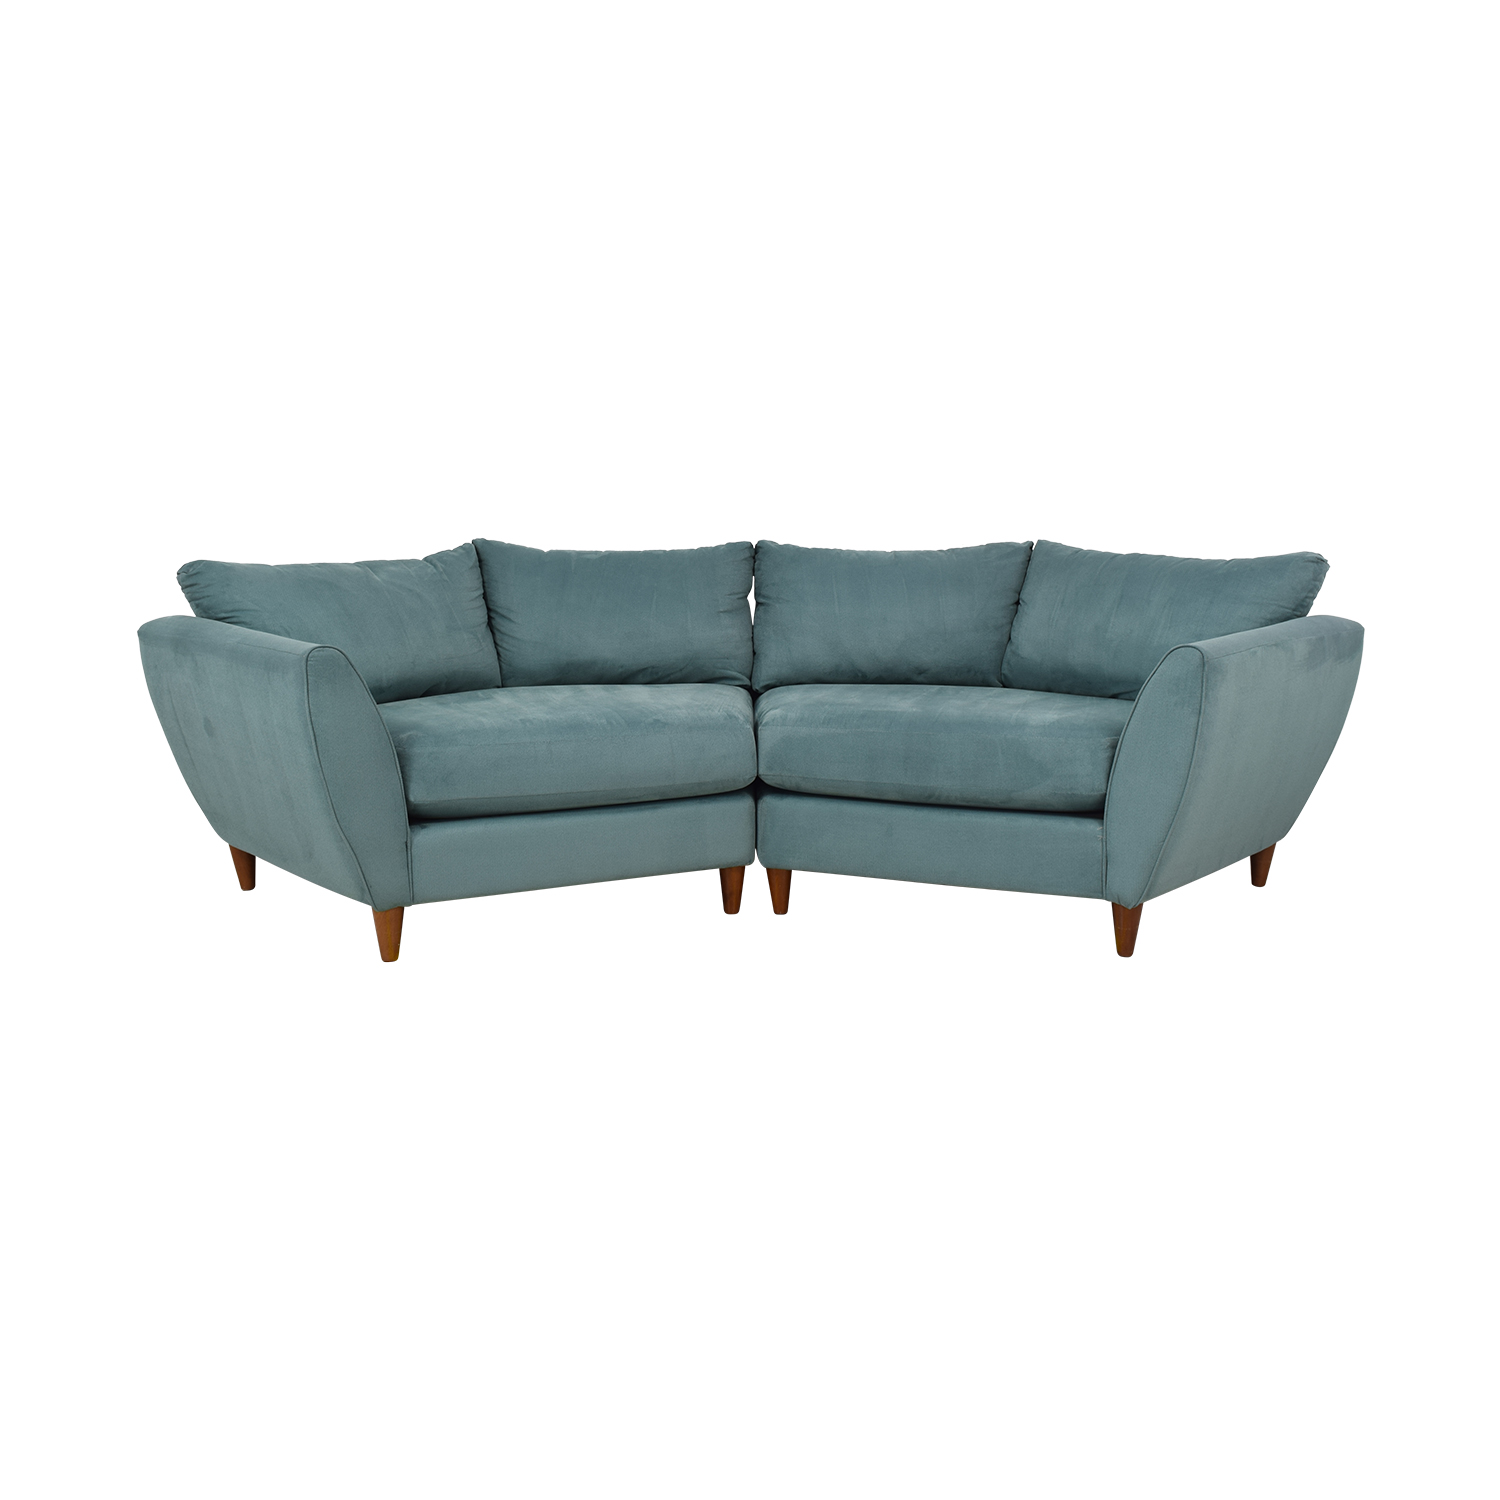 La-Z-Boy La-Z-Boy Sectional Couch discount